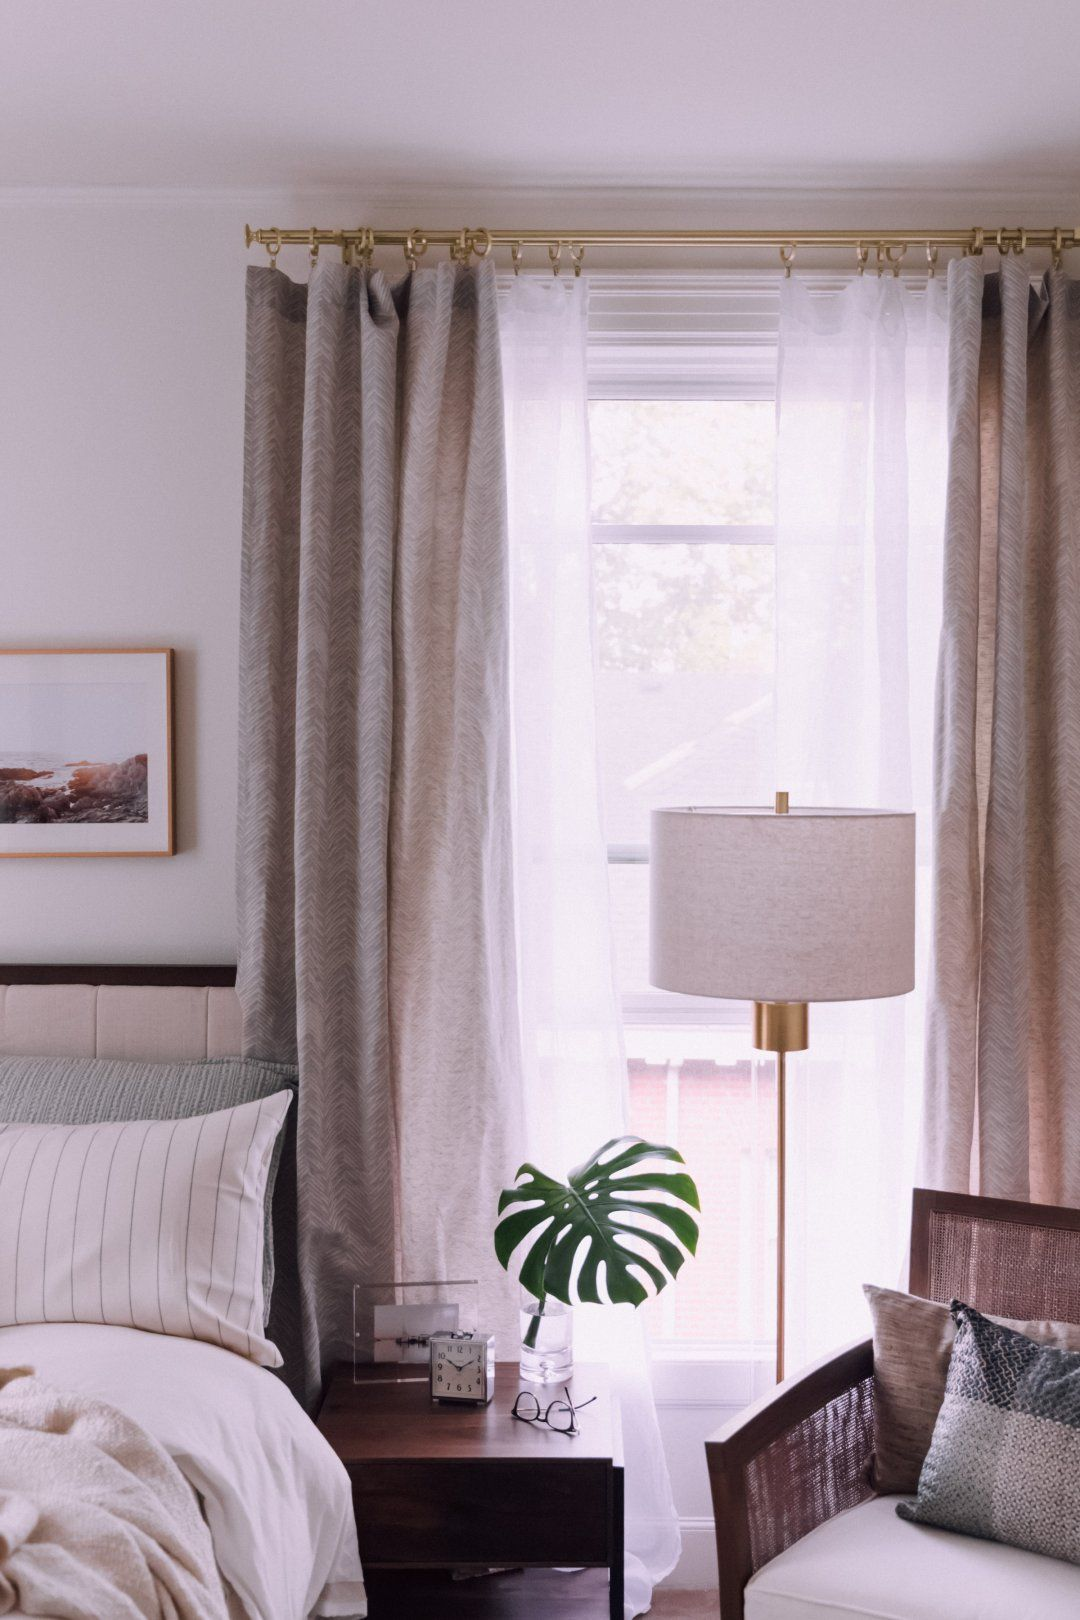 Shop Double 48 84 Gold Curtain Rod White Linen Sheer 52 X108 Curtain Panel With Grommets Dover Small Bedroom